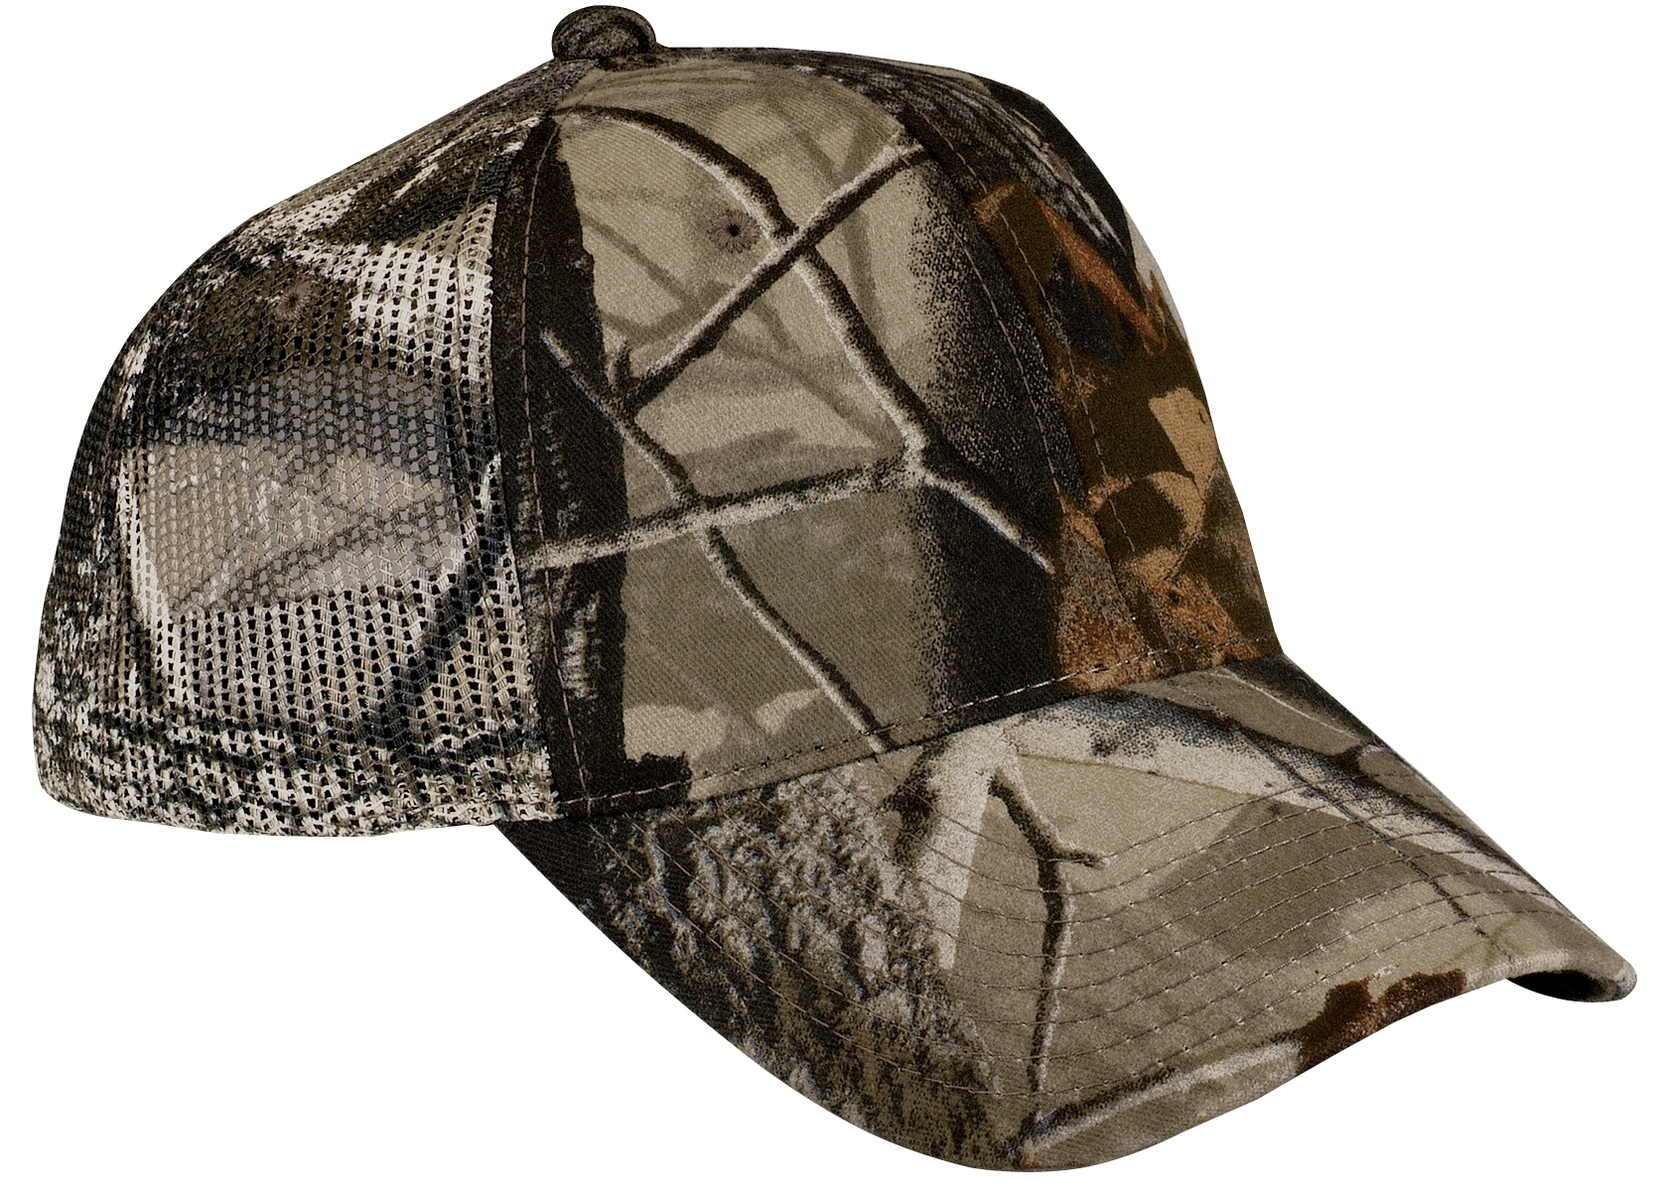 Port Authority ®  Pro Camouflage Series Cap with Mesh Back.  C869 - Realtree Hardwoods